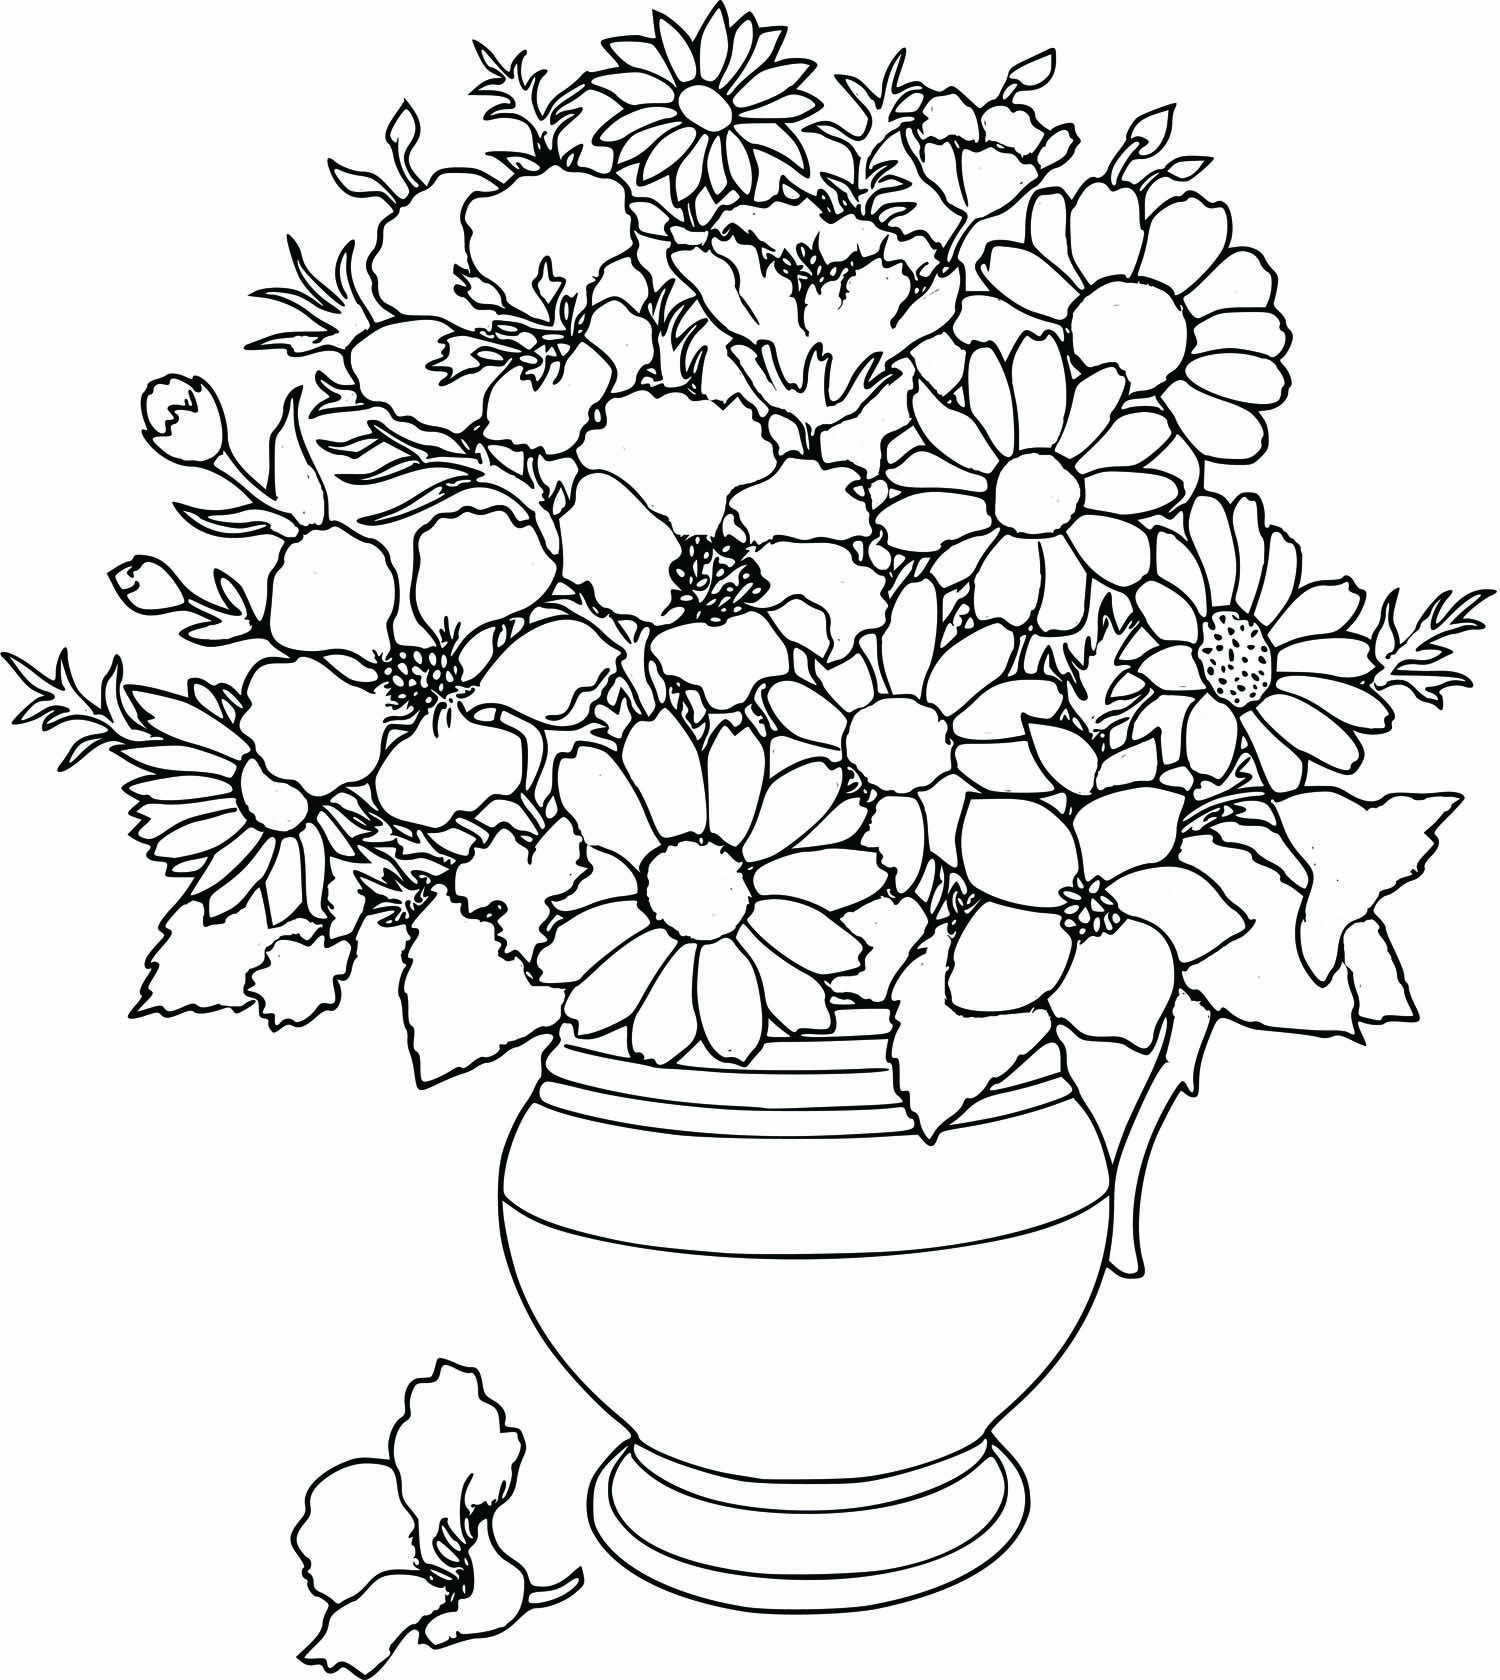 Colouring in sheets of flowers - Colouring Pages Detailed Flower